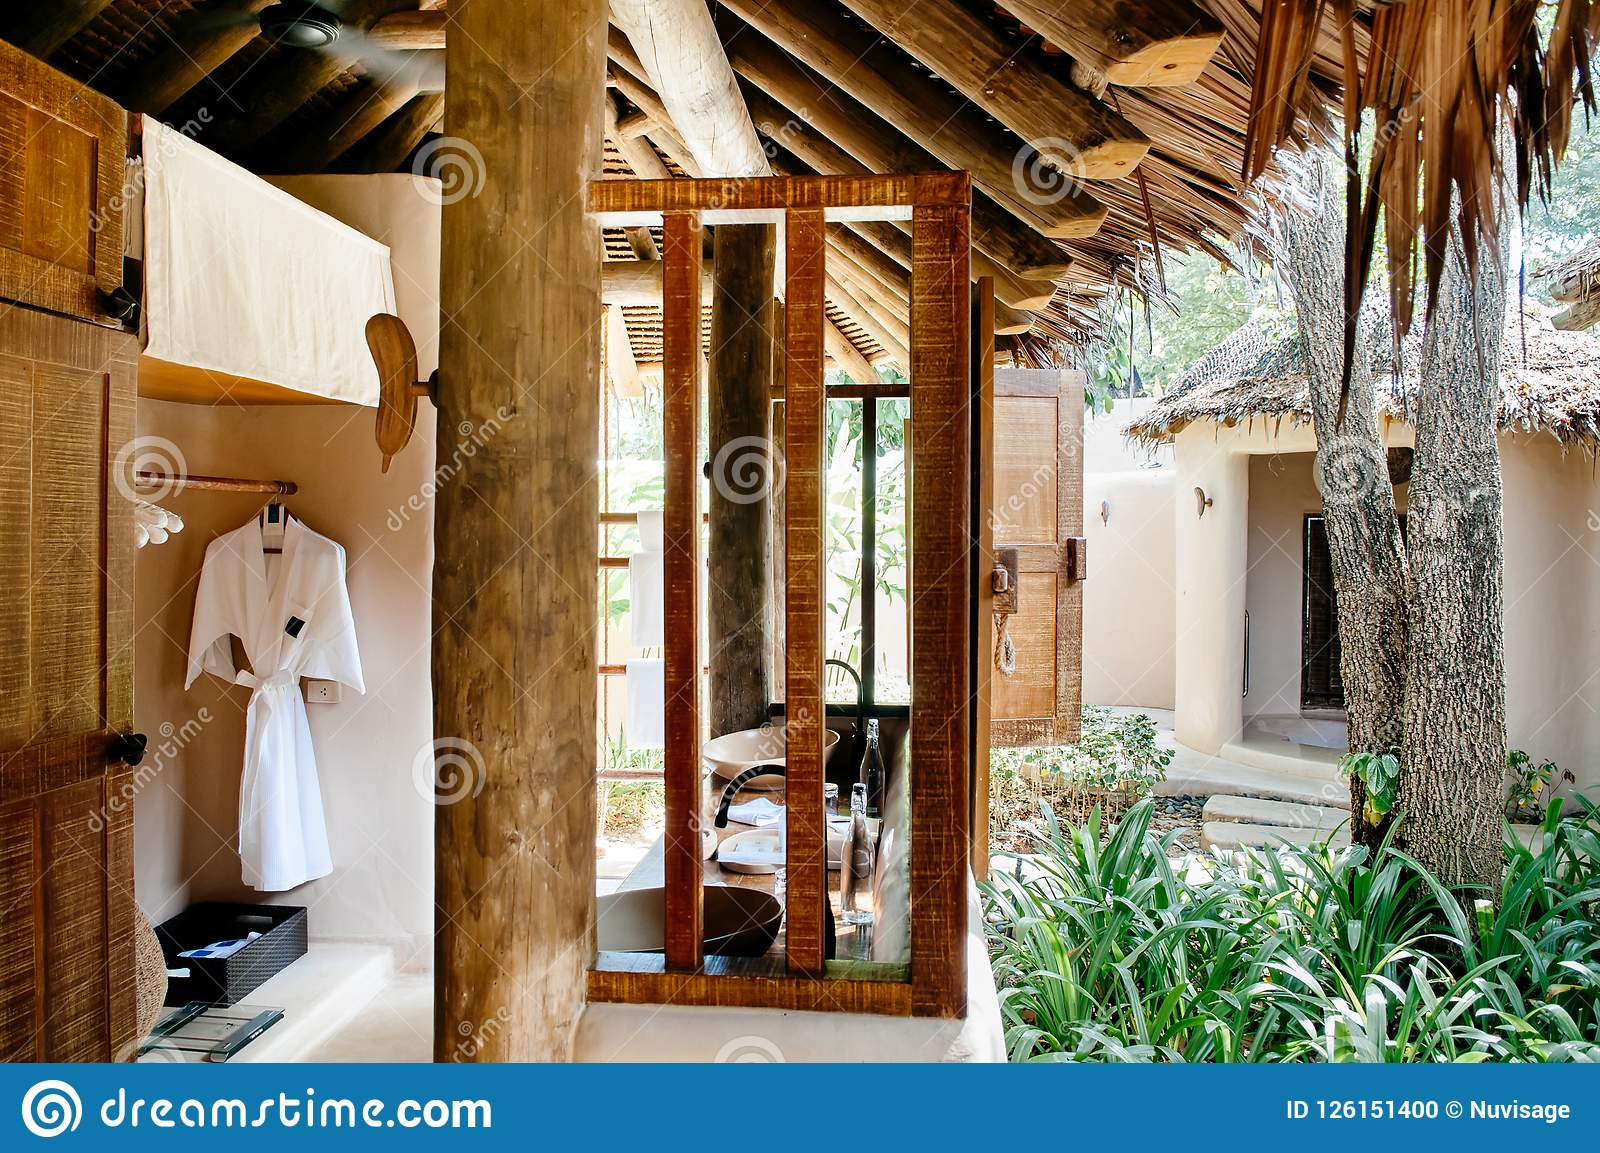 Thatched Roof Open Air Bathroom Tropical Resort Style Interior W Editorial Image Image Of Decoration Bath 126151400